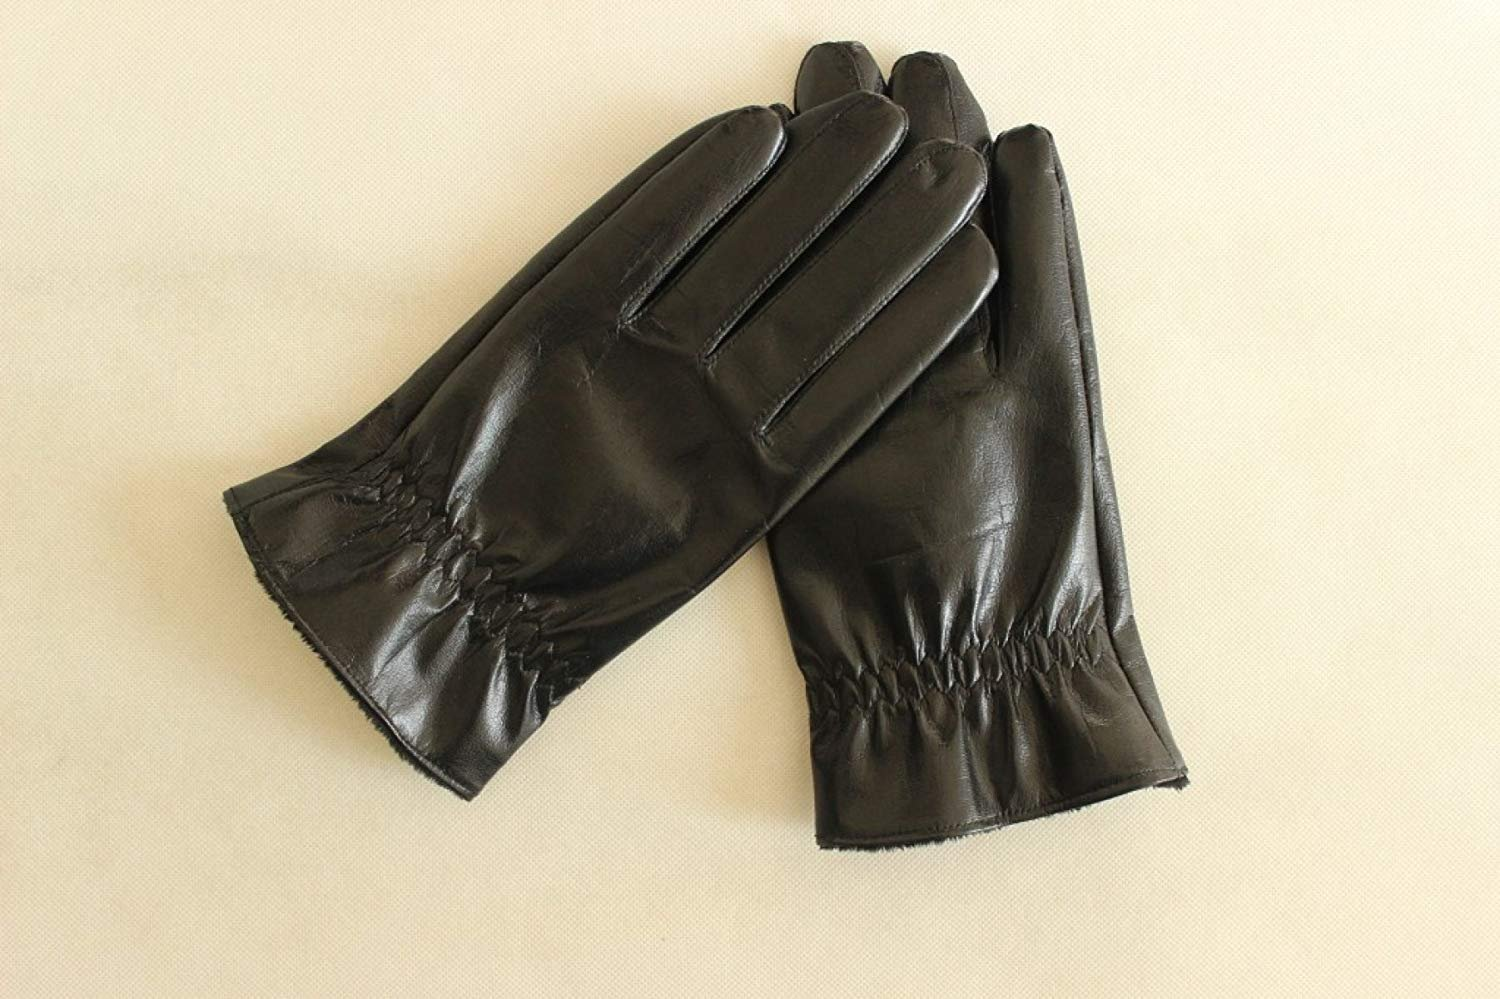 CWJ Men's Gloves Thick Drive Car Ride Warm,Black,One Size by CWJ (Image #2)